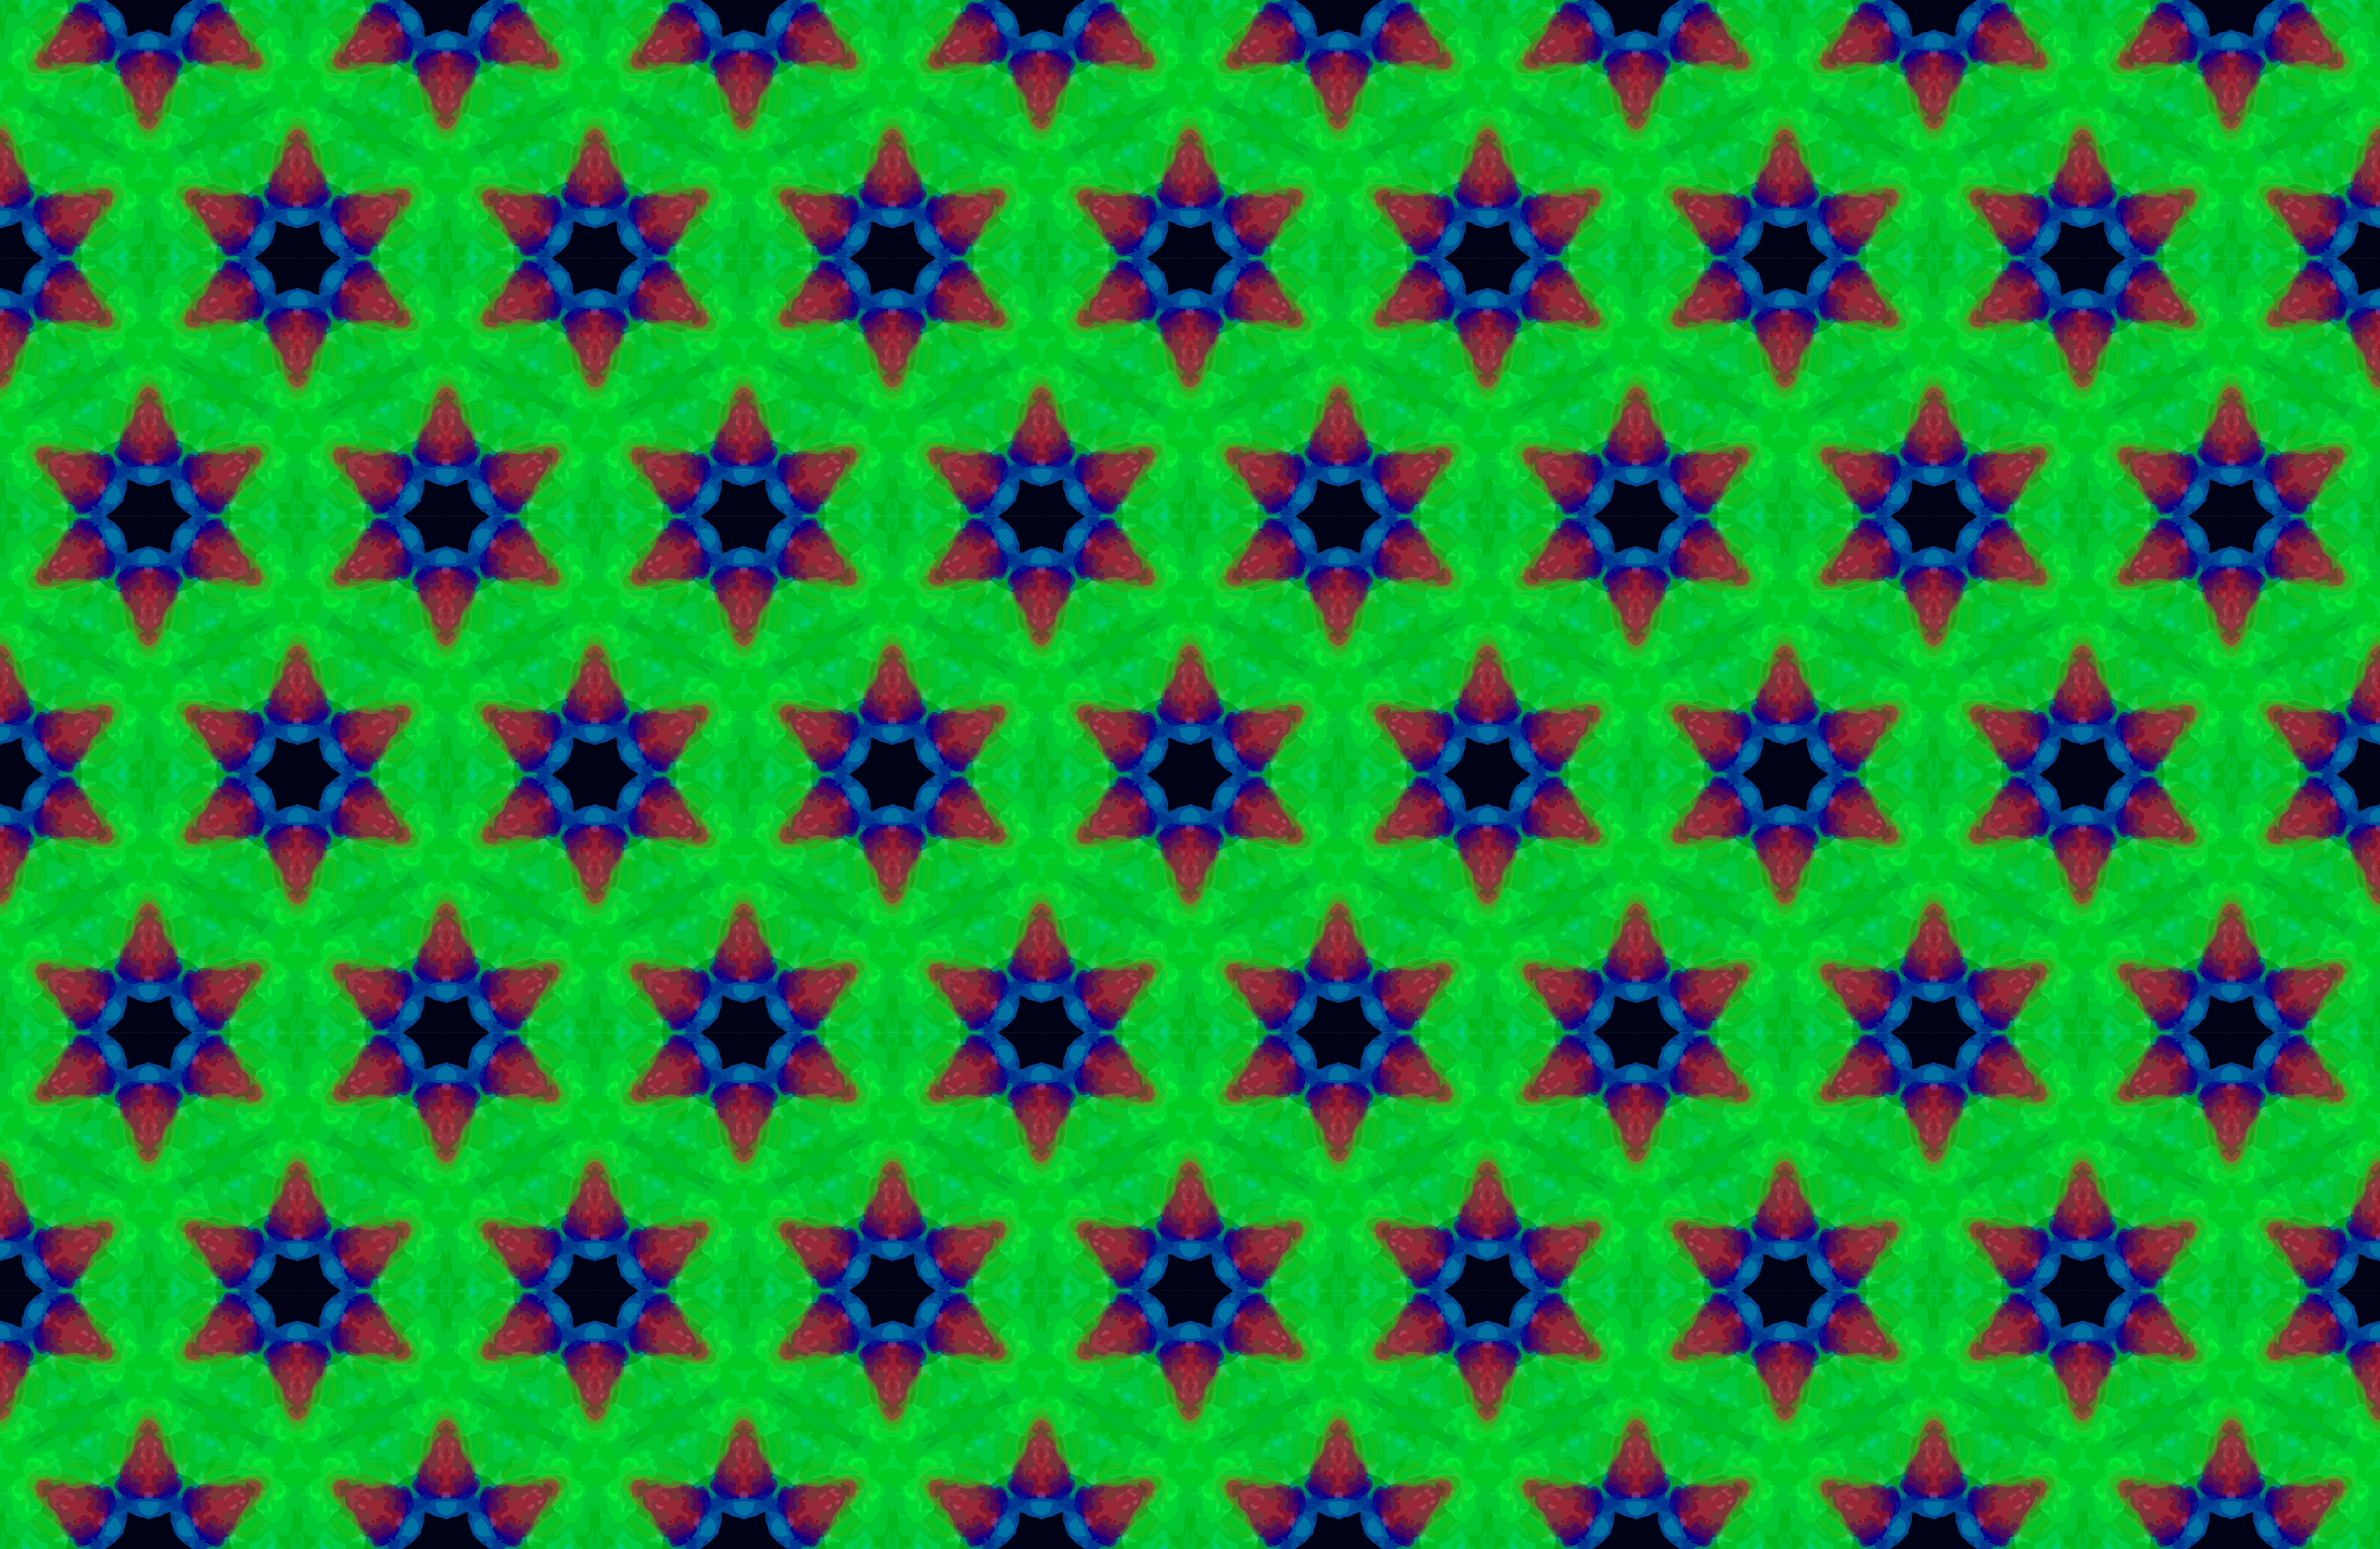 Background pattern 89 (colour 2) by Firkin